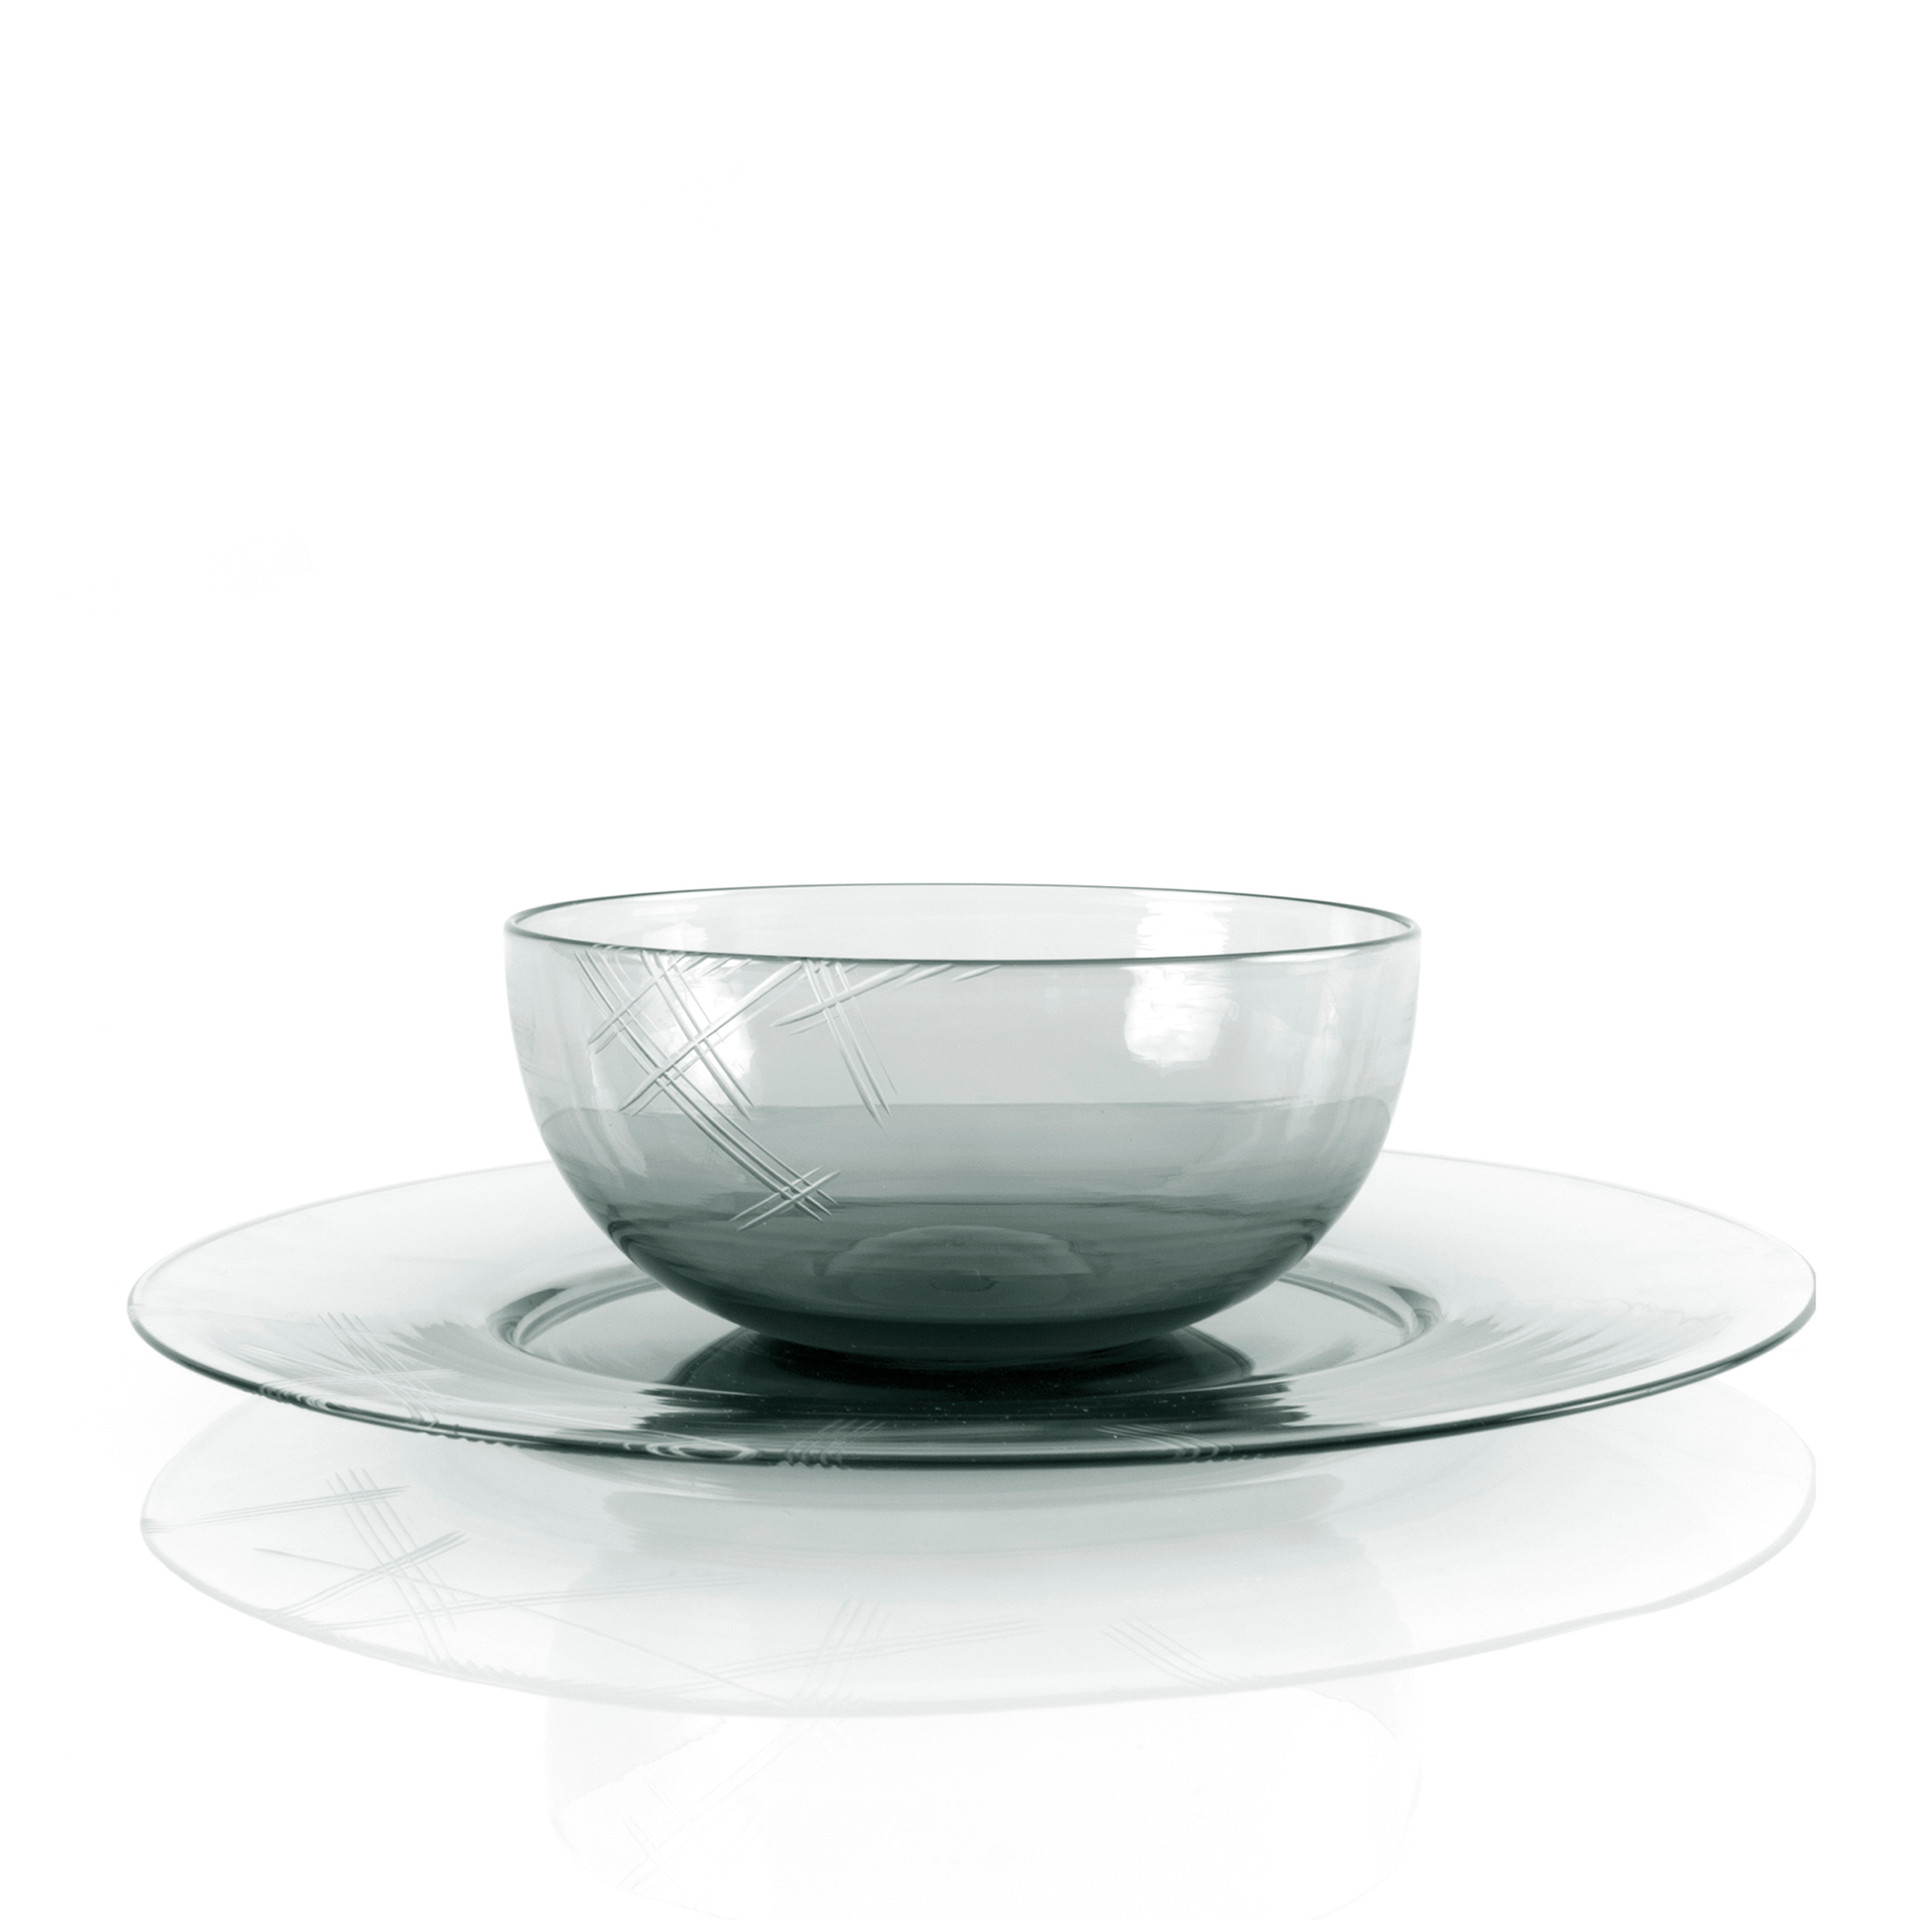 Gather_Shaker&Salt.Bowl&Plate.jpg